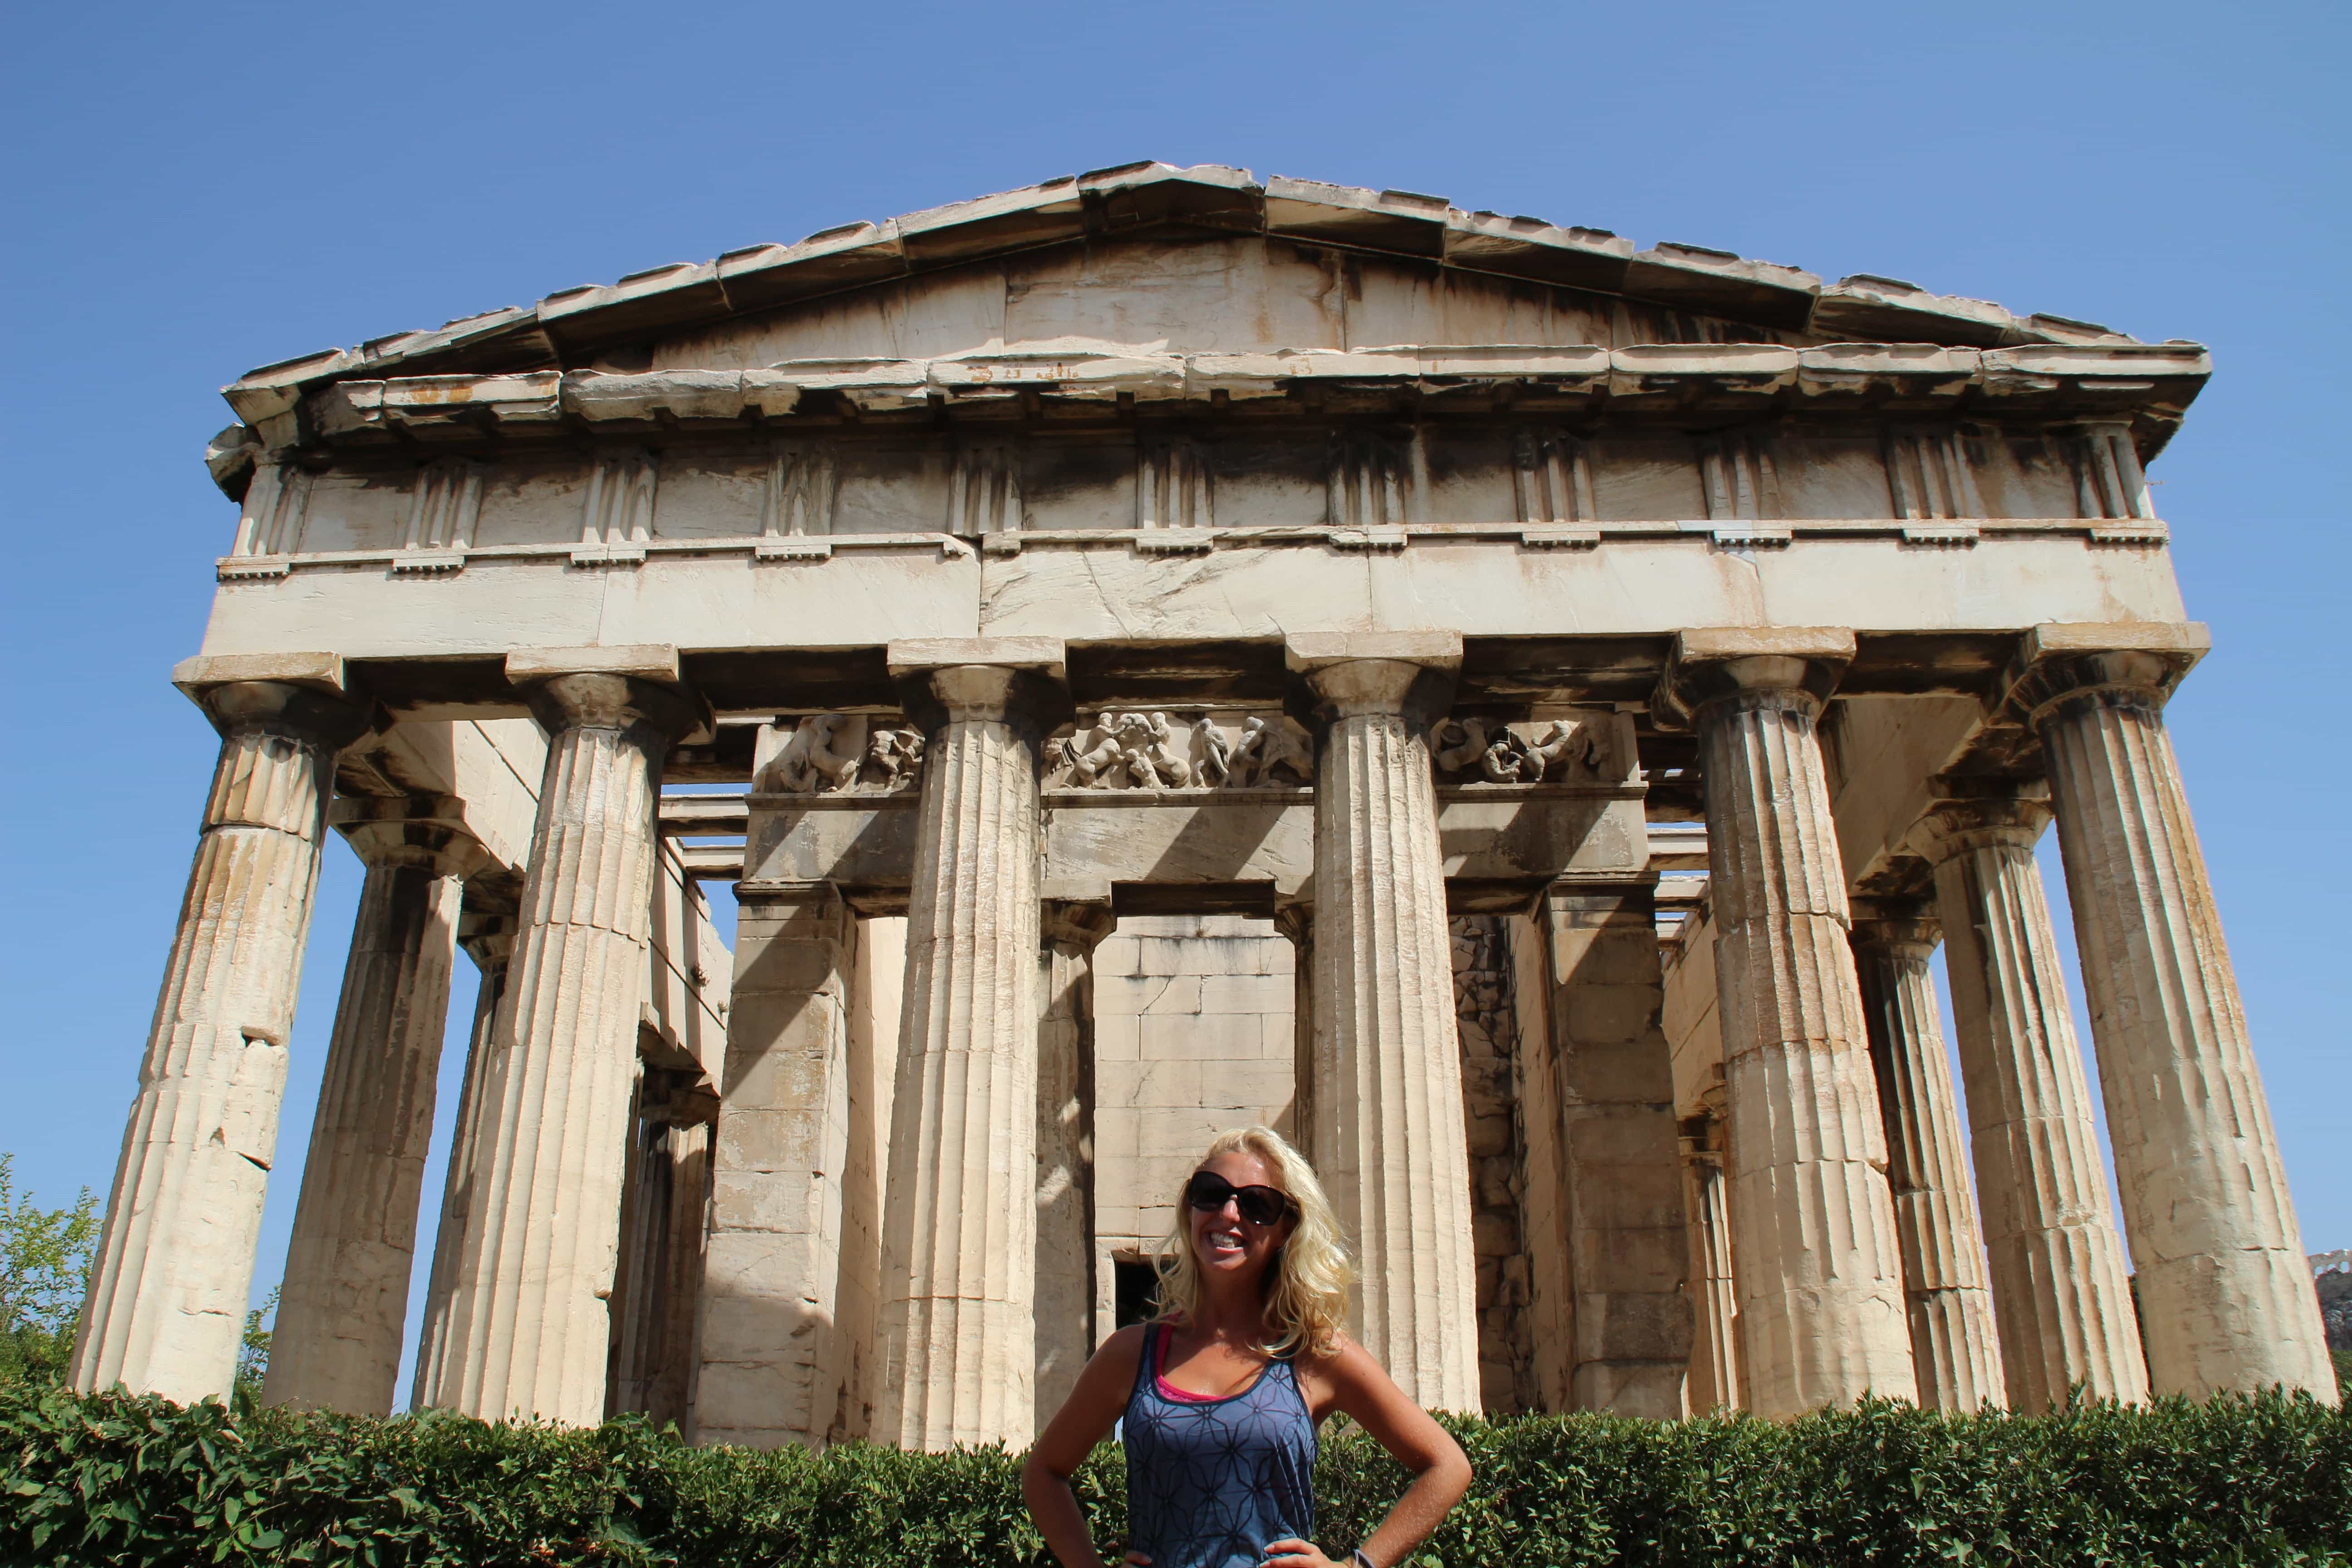 Have you ever wanted to visit Athens? There's so much to see and do within a week! Create an itinerary and enjoy this vibrant city and the culture hidden around every corner. Read more at thefivefoottraveler.com